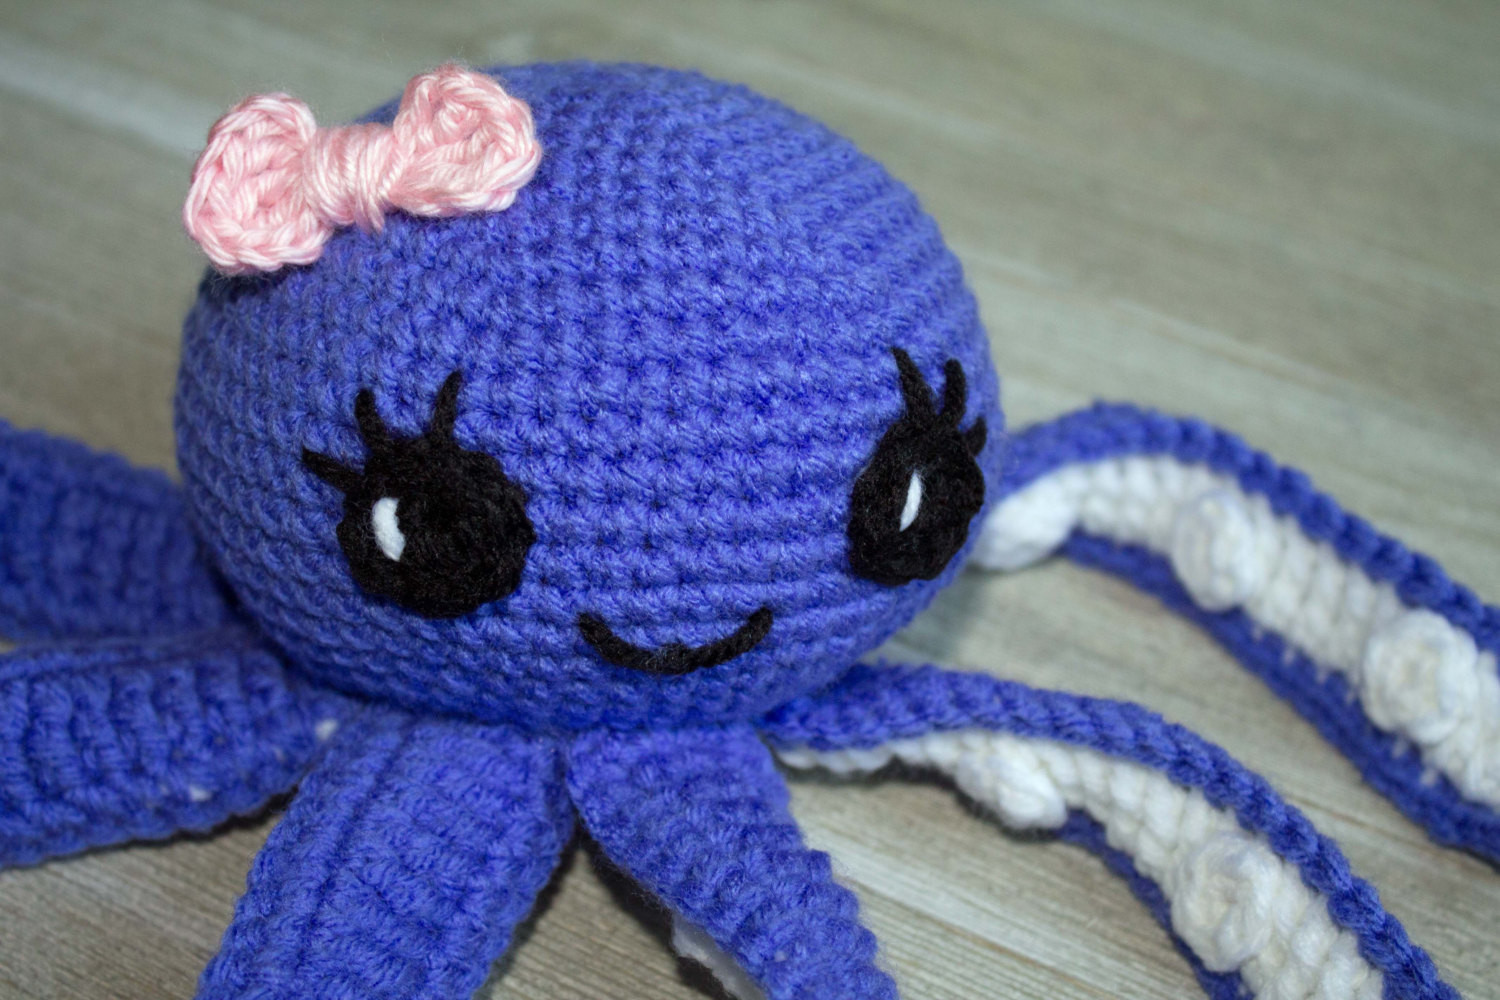 Crochet Octopus Pattern Fresh Crochet Octopus Pattern Pattern Only Amigurumi Octopus Pattern Of Amazing 50 Photos Crochet Octopus Pattern